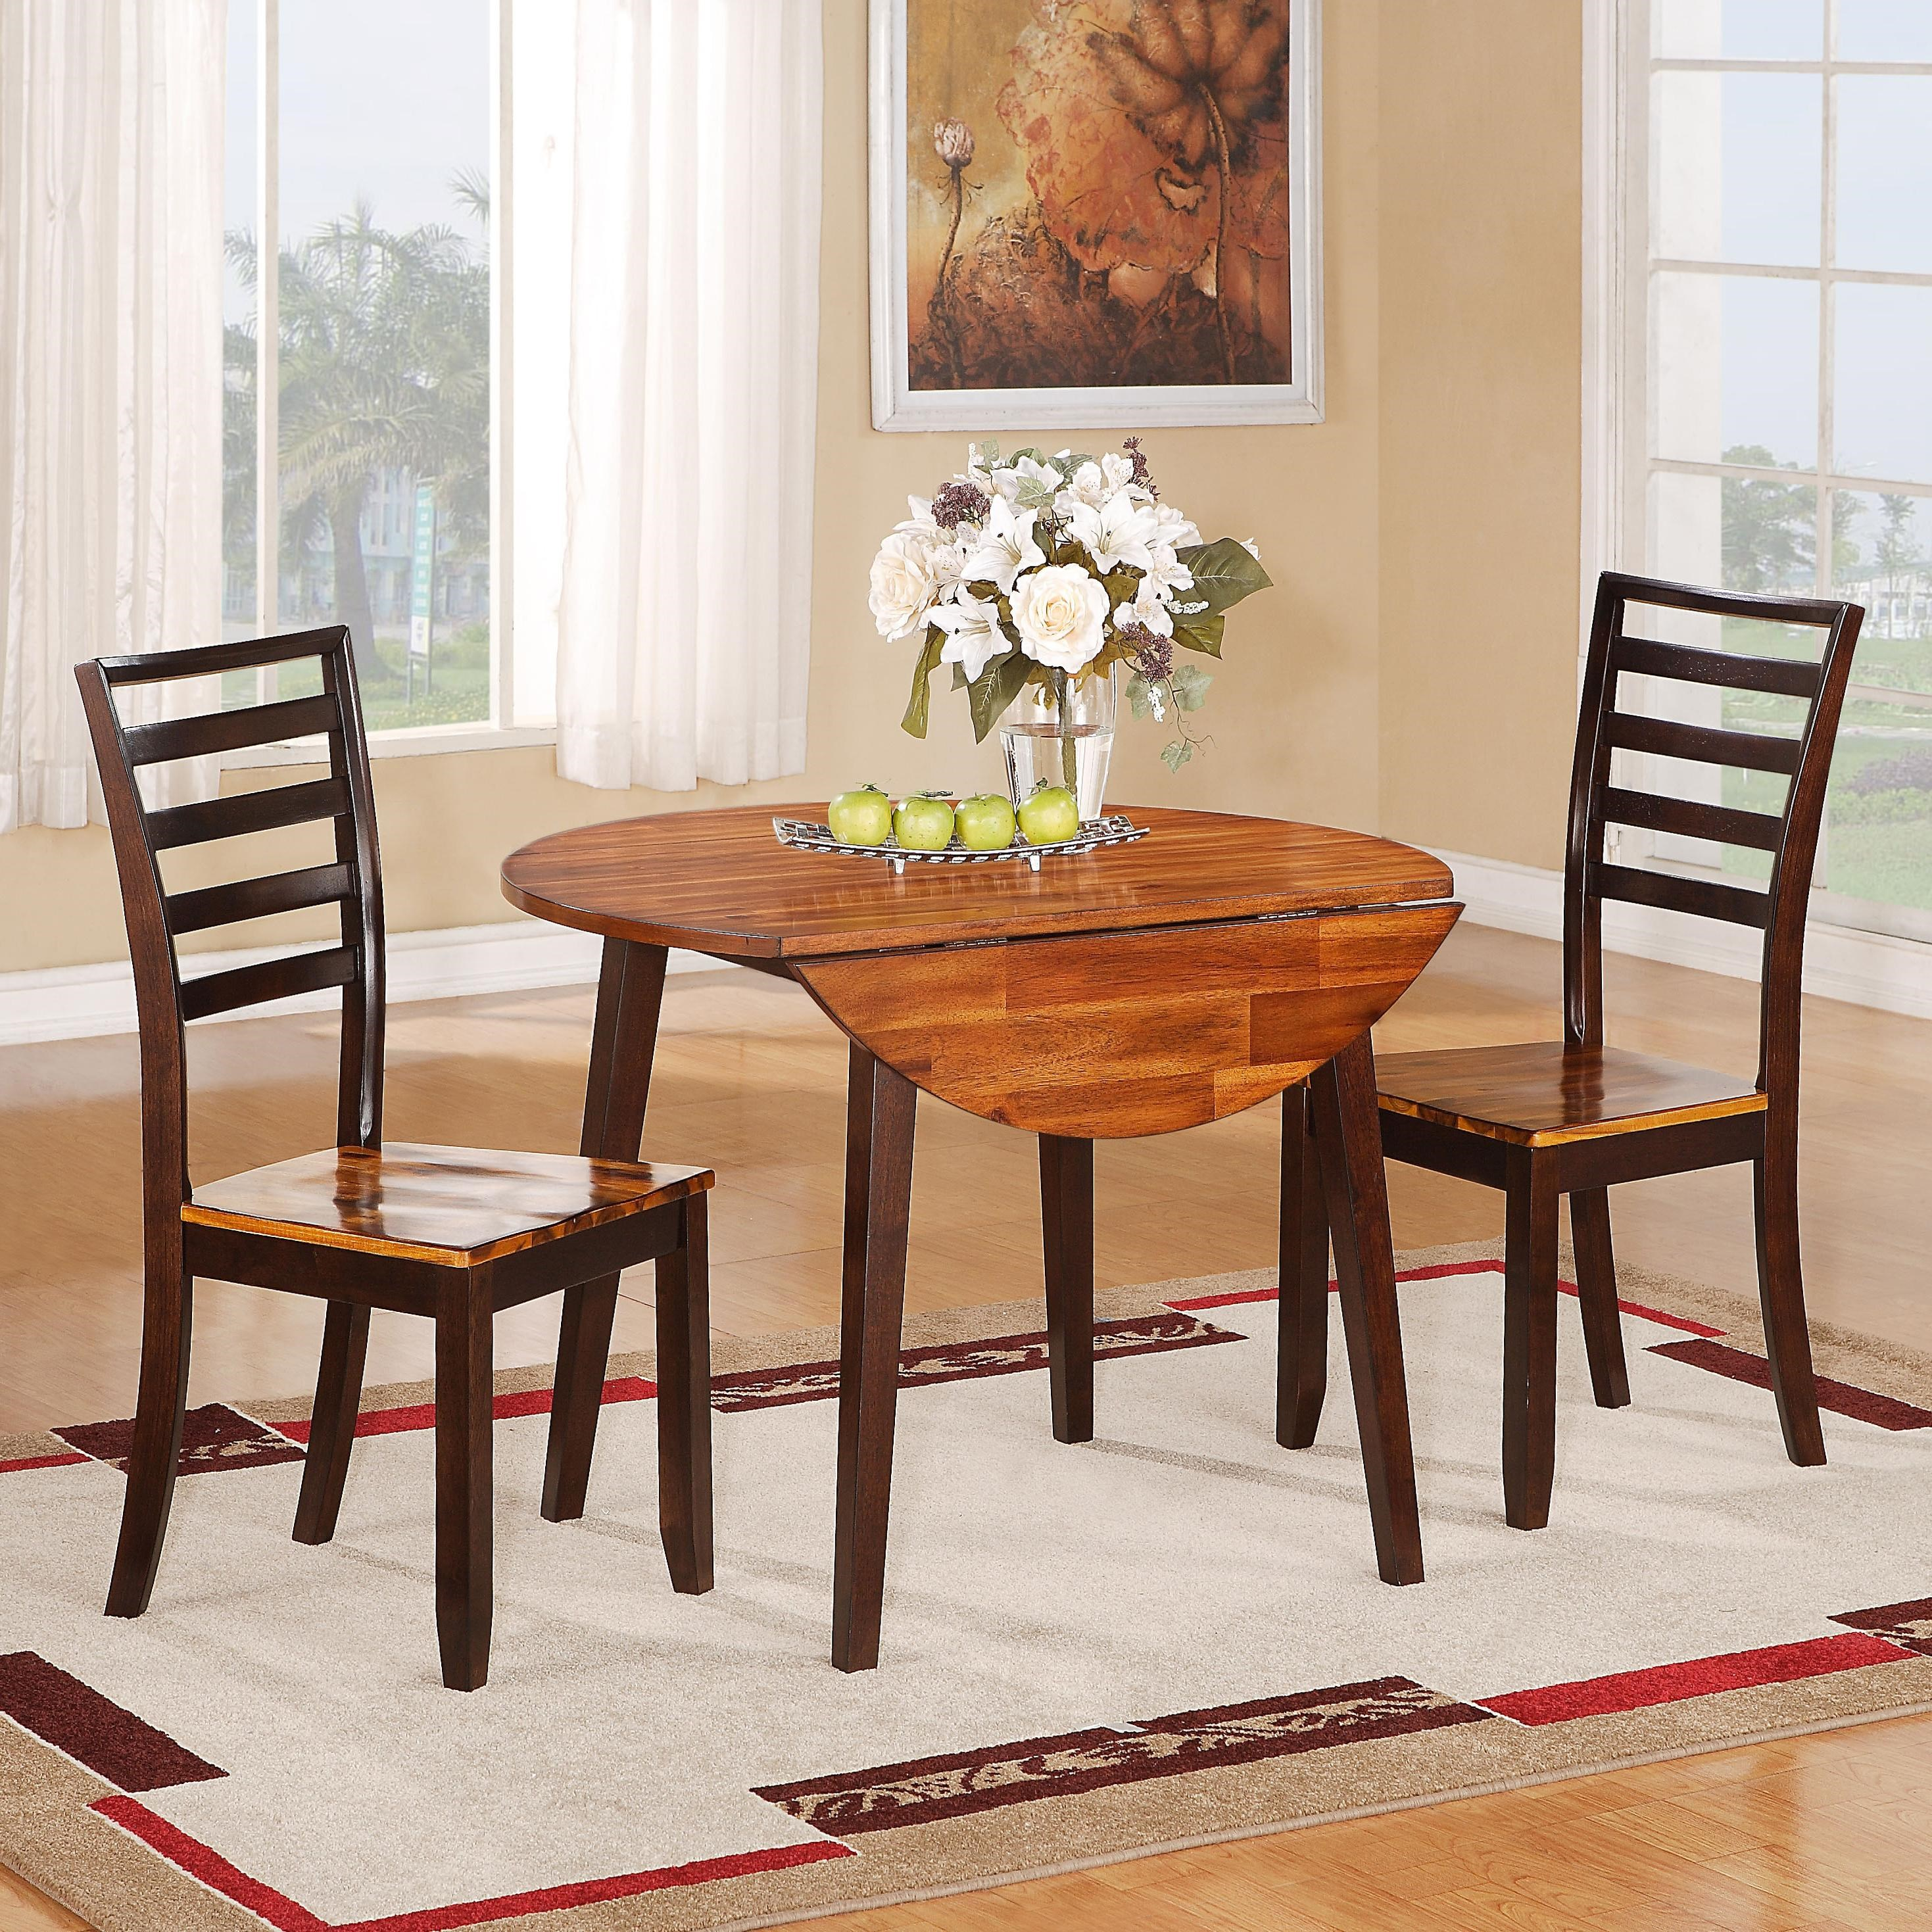 Merveilleux Holland House Greer Table + 2 Chairs